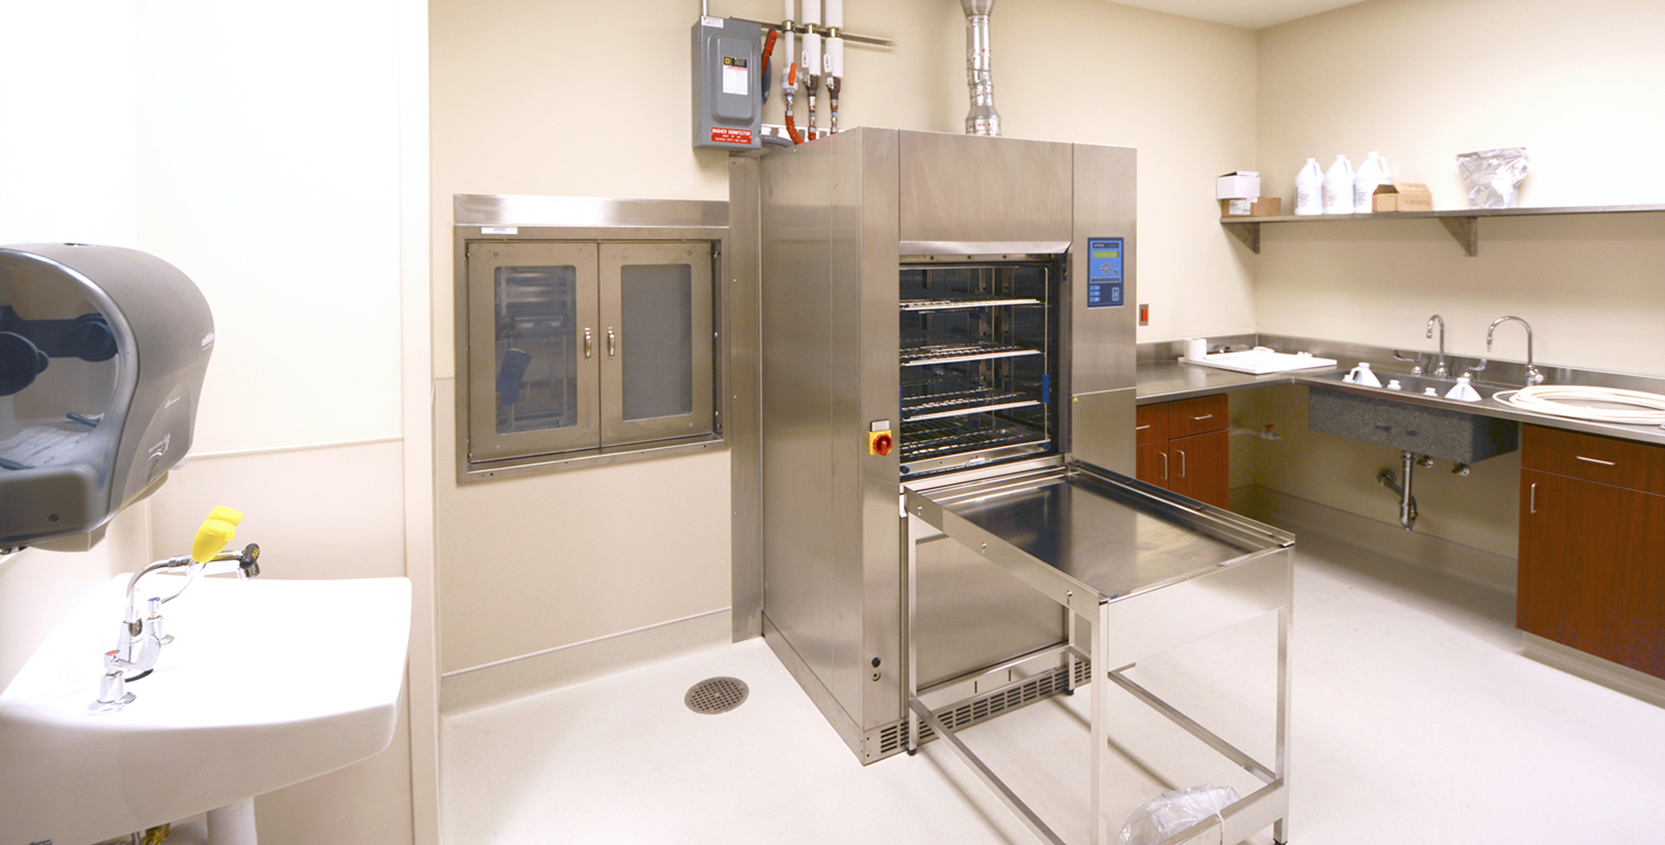 Sparrow-Ionia-Replacement-Hospital-Storage-1665x845